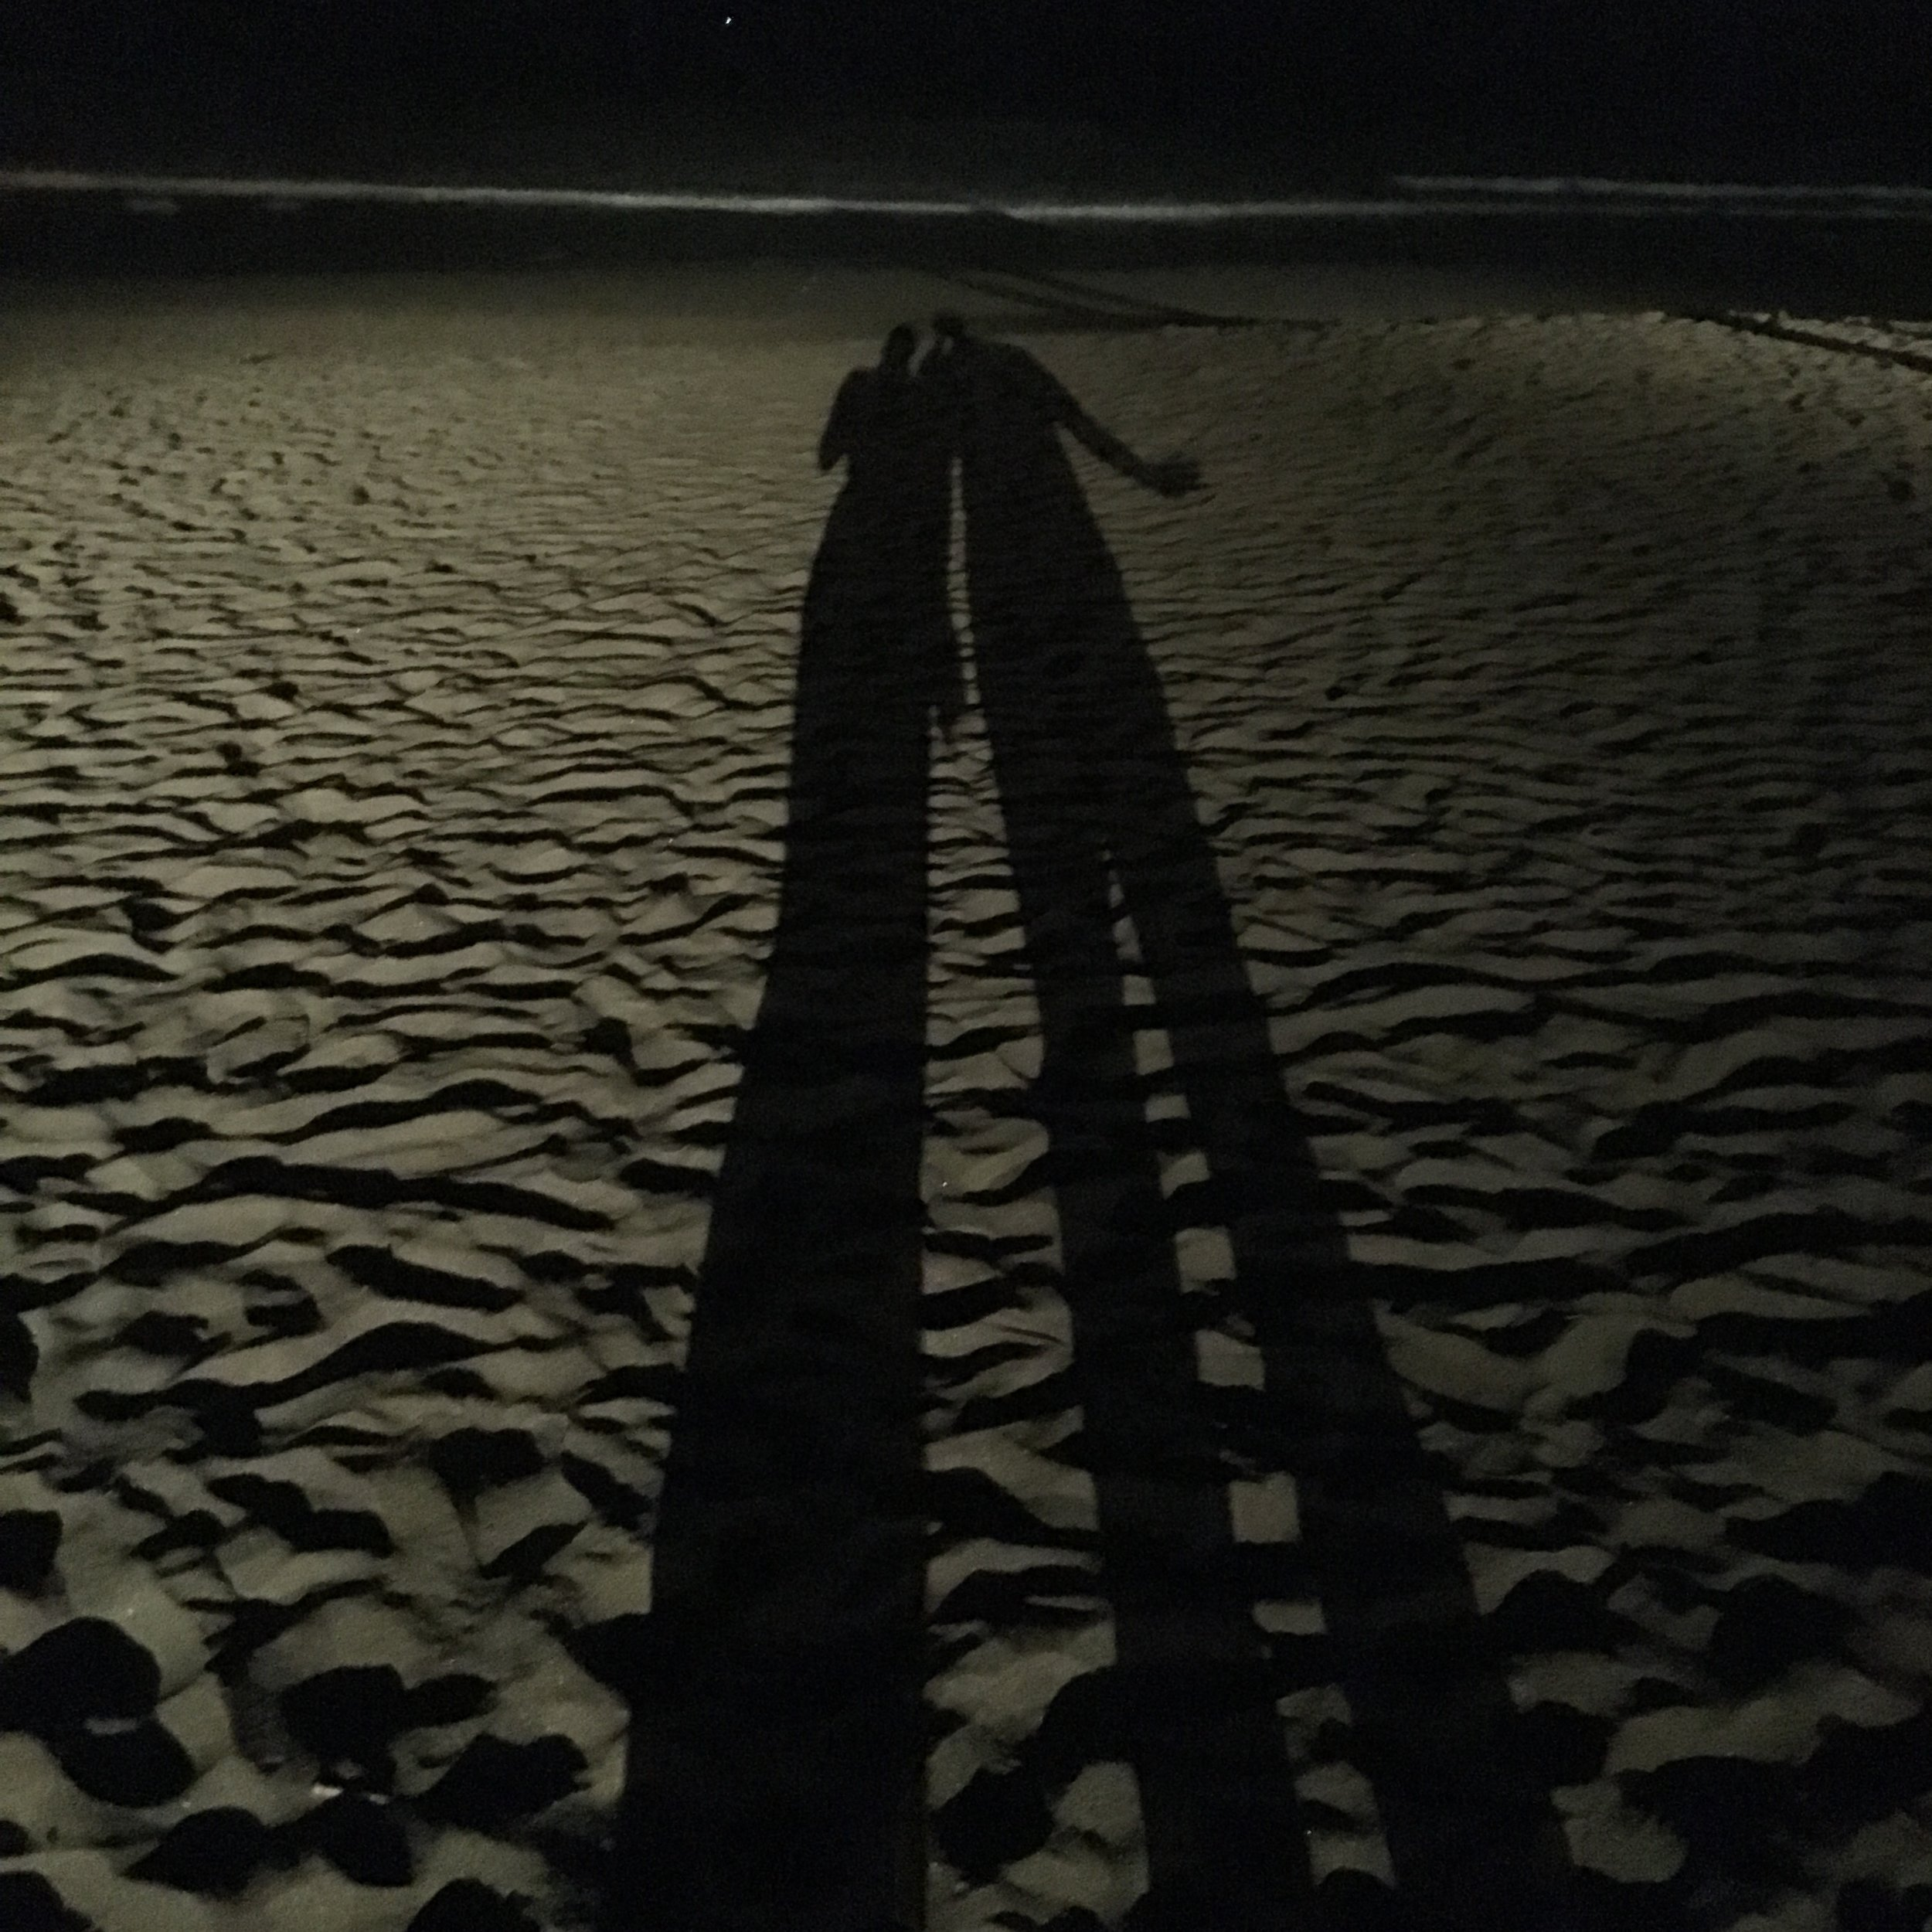 Our shadows on the beach at Seminyak...